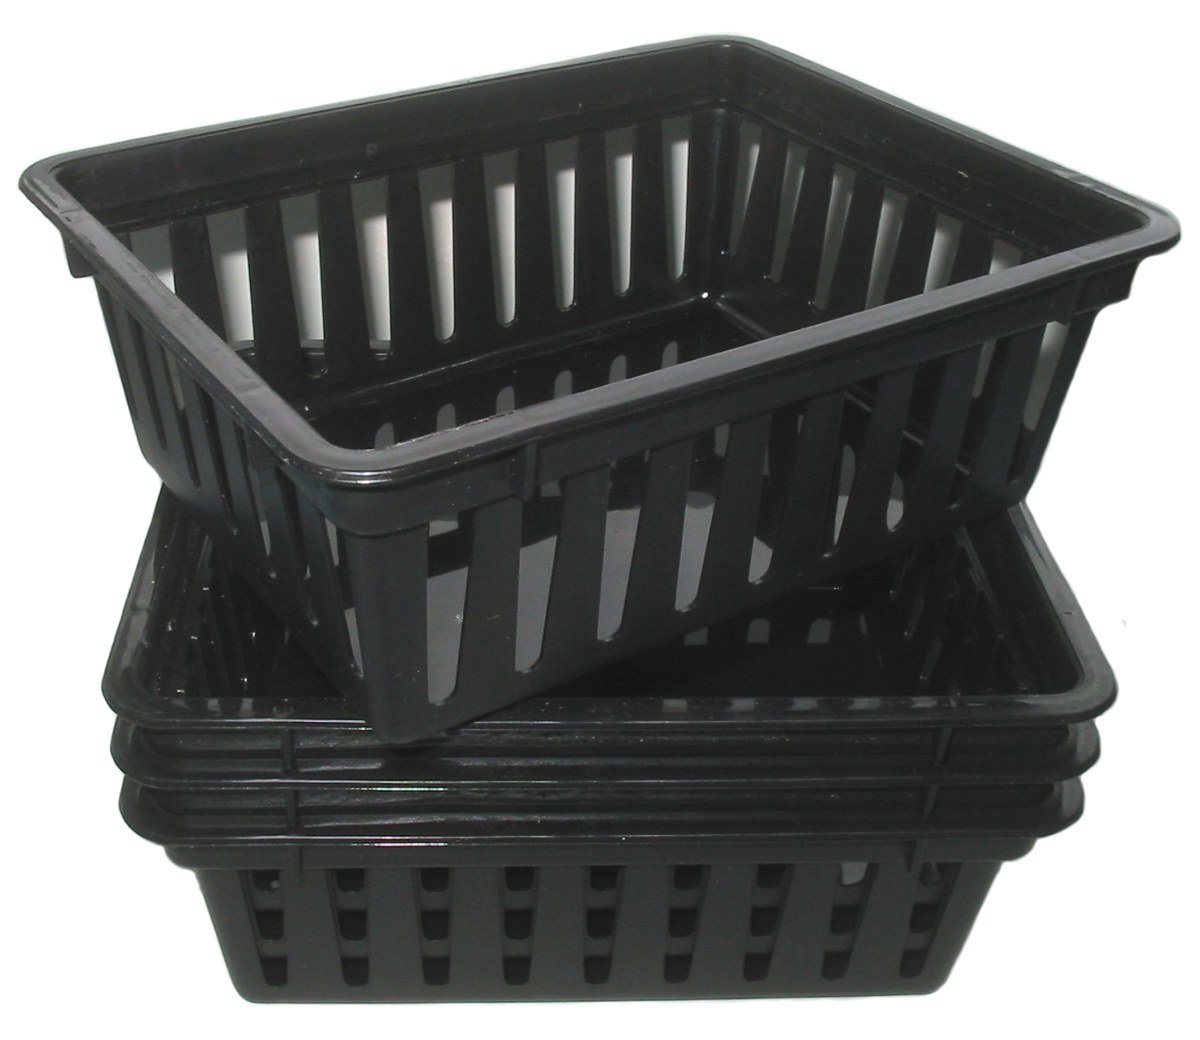 office storage baskets. mini plastic storage baskets pack of 4 black officecrafthobby containers amazoncouk diy u0026 tools office e